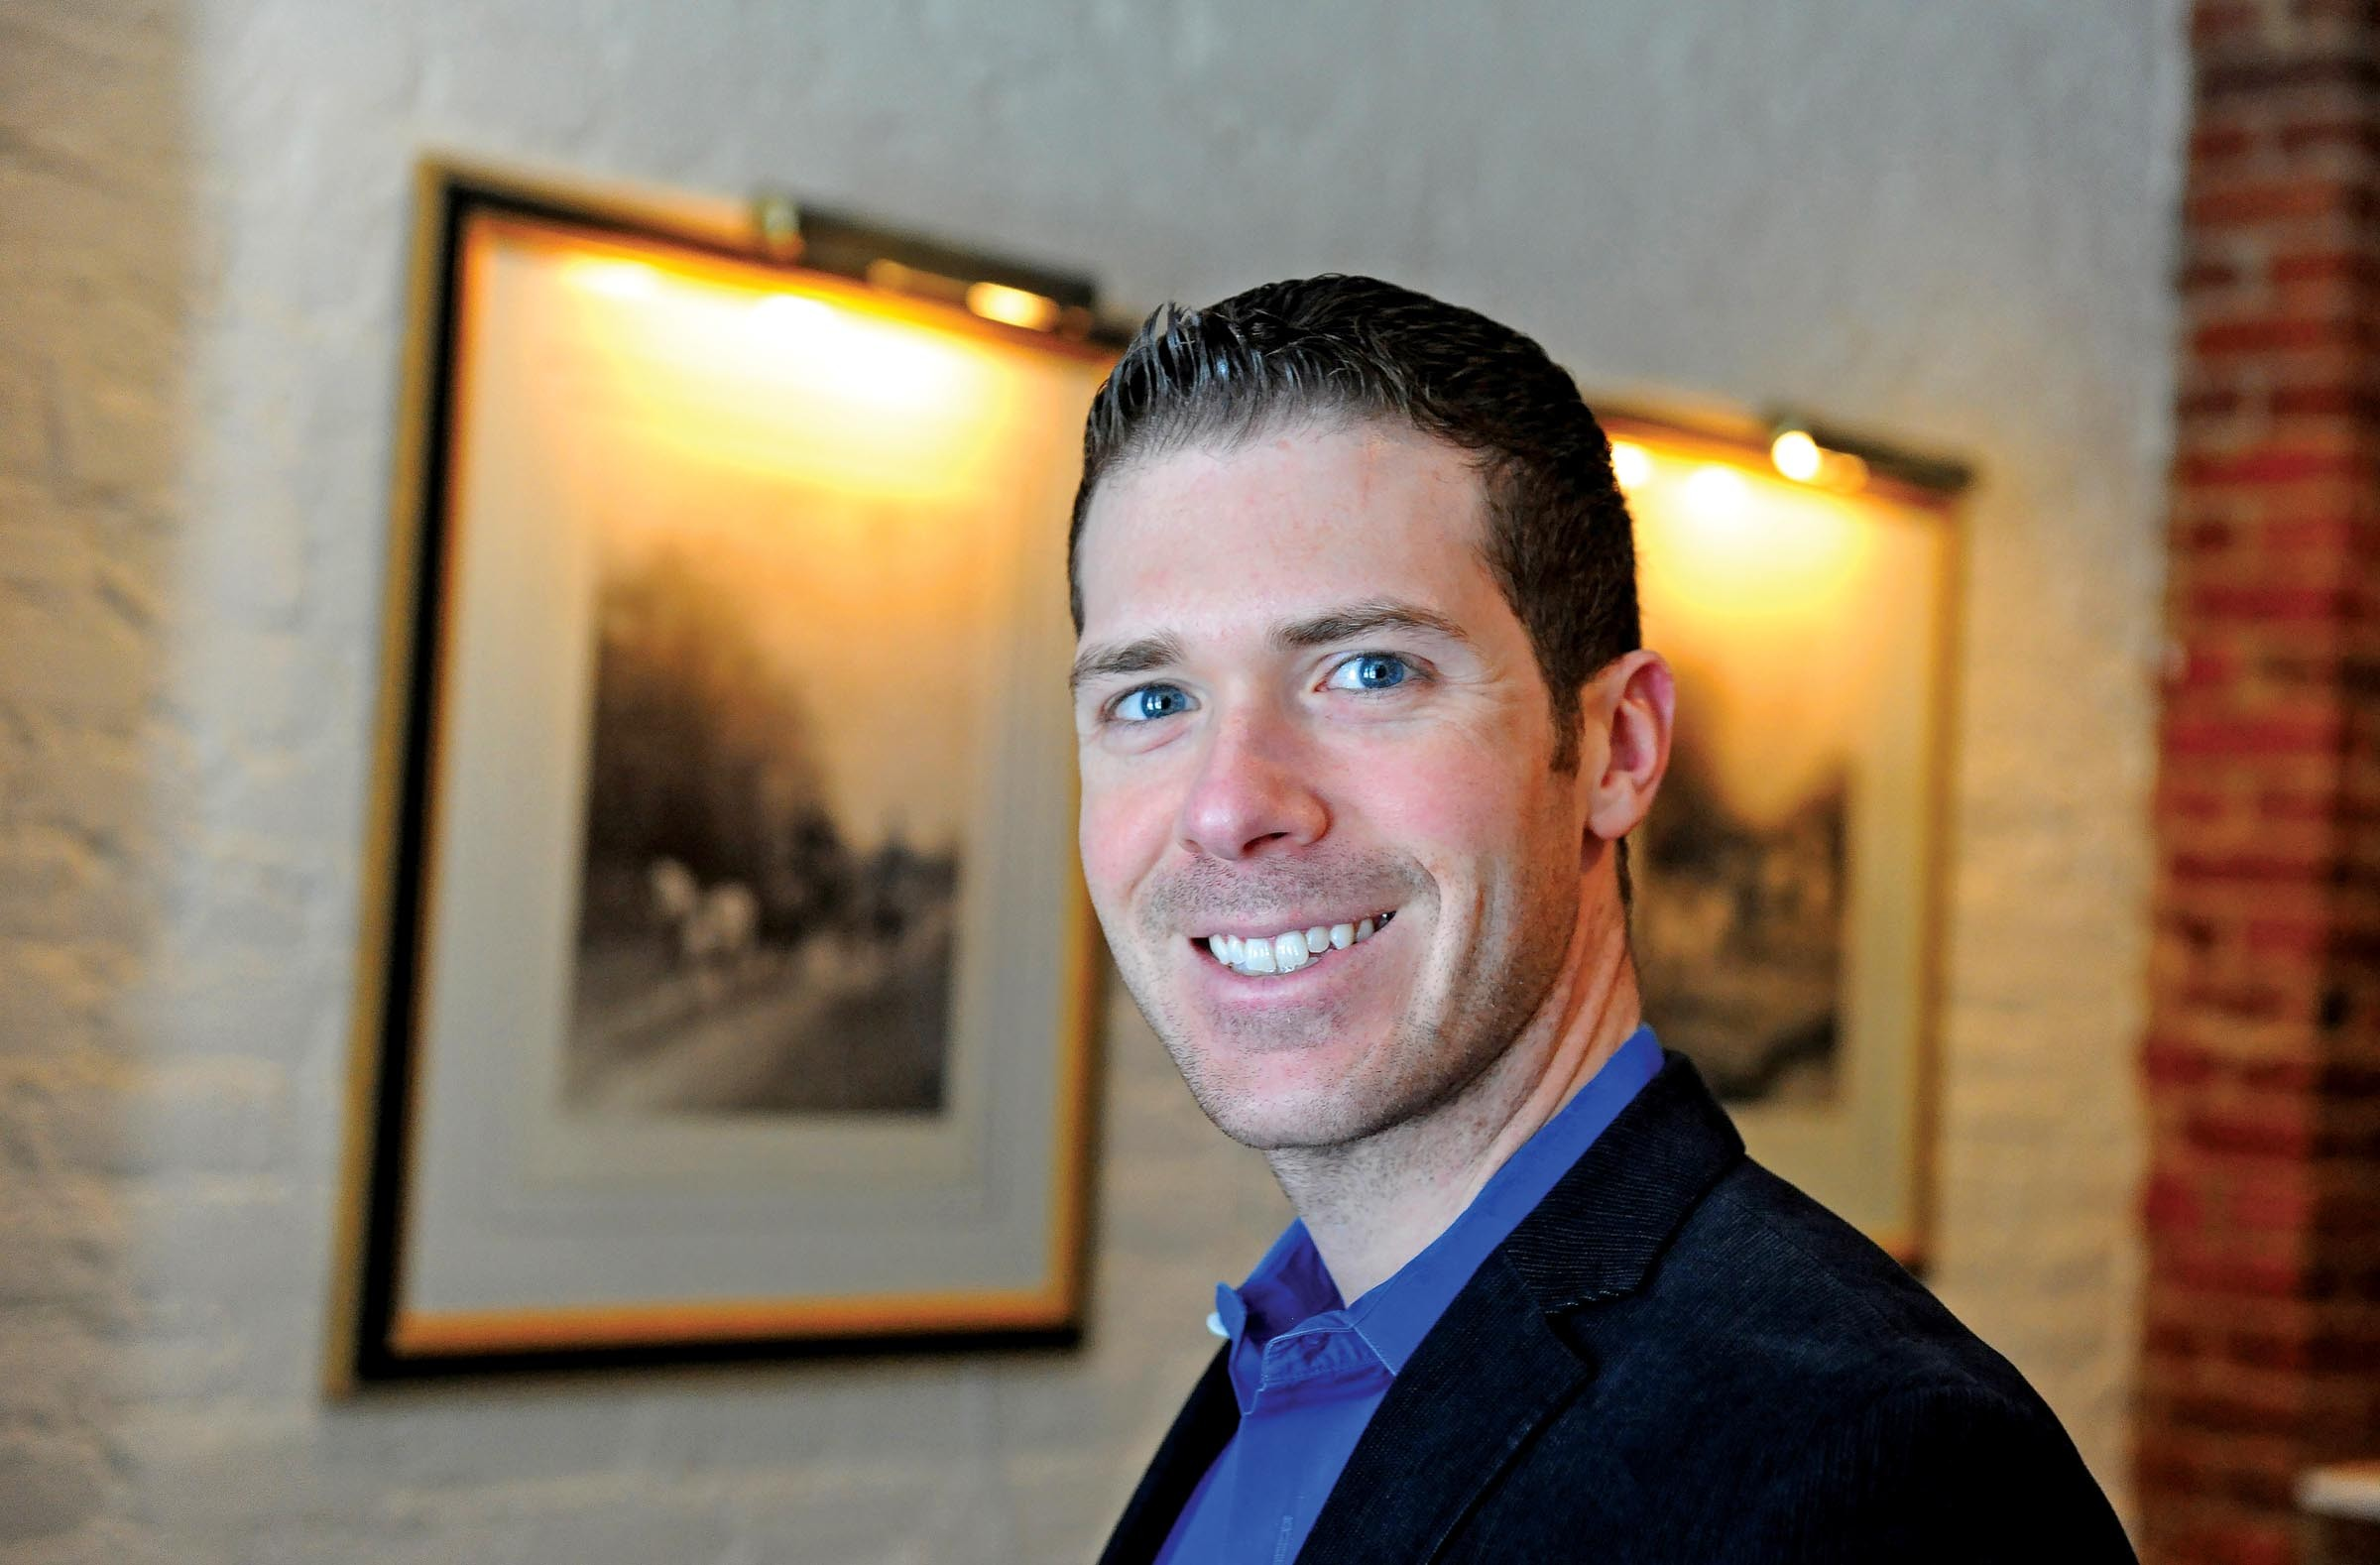 """Justin Ayars, co-owner of 2113 Bistro in Shockoe Bottom, serves as president of the Richmond Business Alliance, an LGBT-friendly chamber of commerce. He says recent advances in the community — and the backlash that's followed — demonstrate Richmond is coming into the 21st century """"kicking and screaming."""" - SCOTT ELMQUIST"""